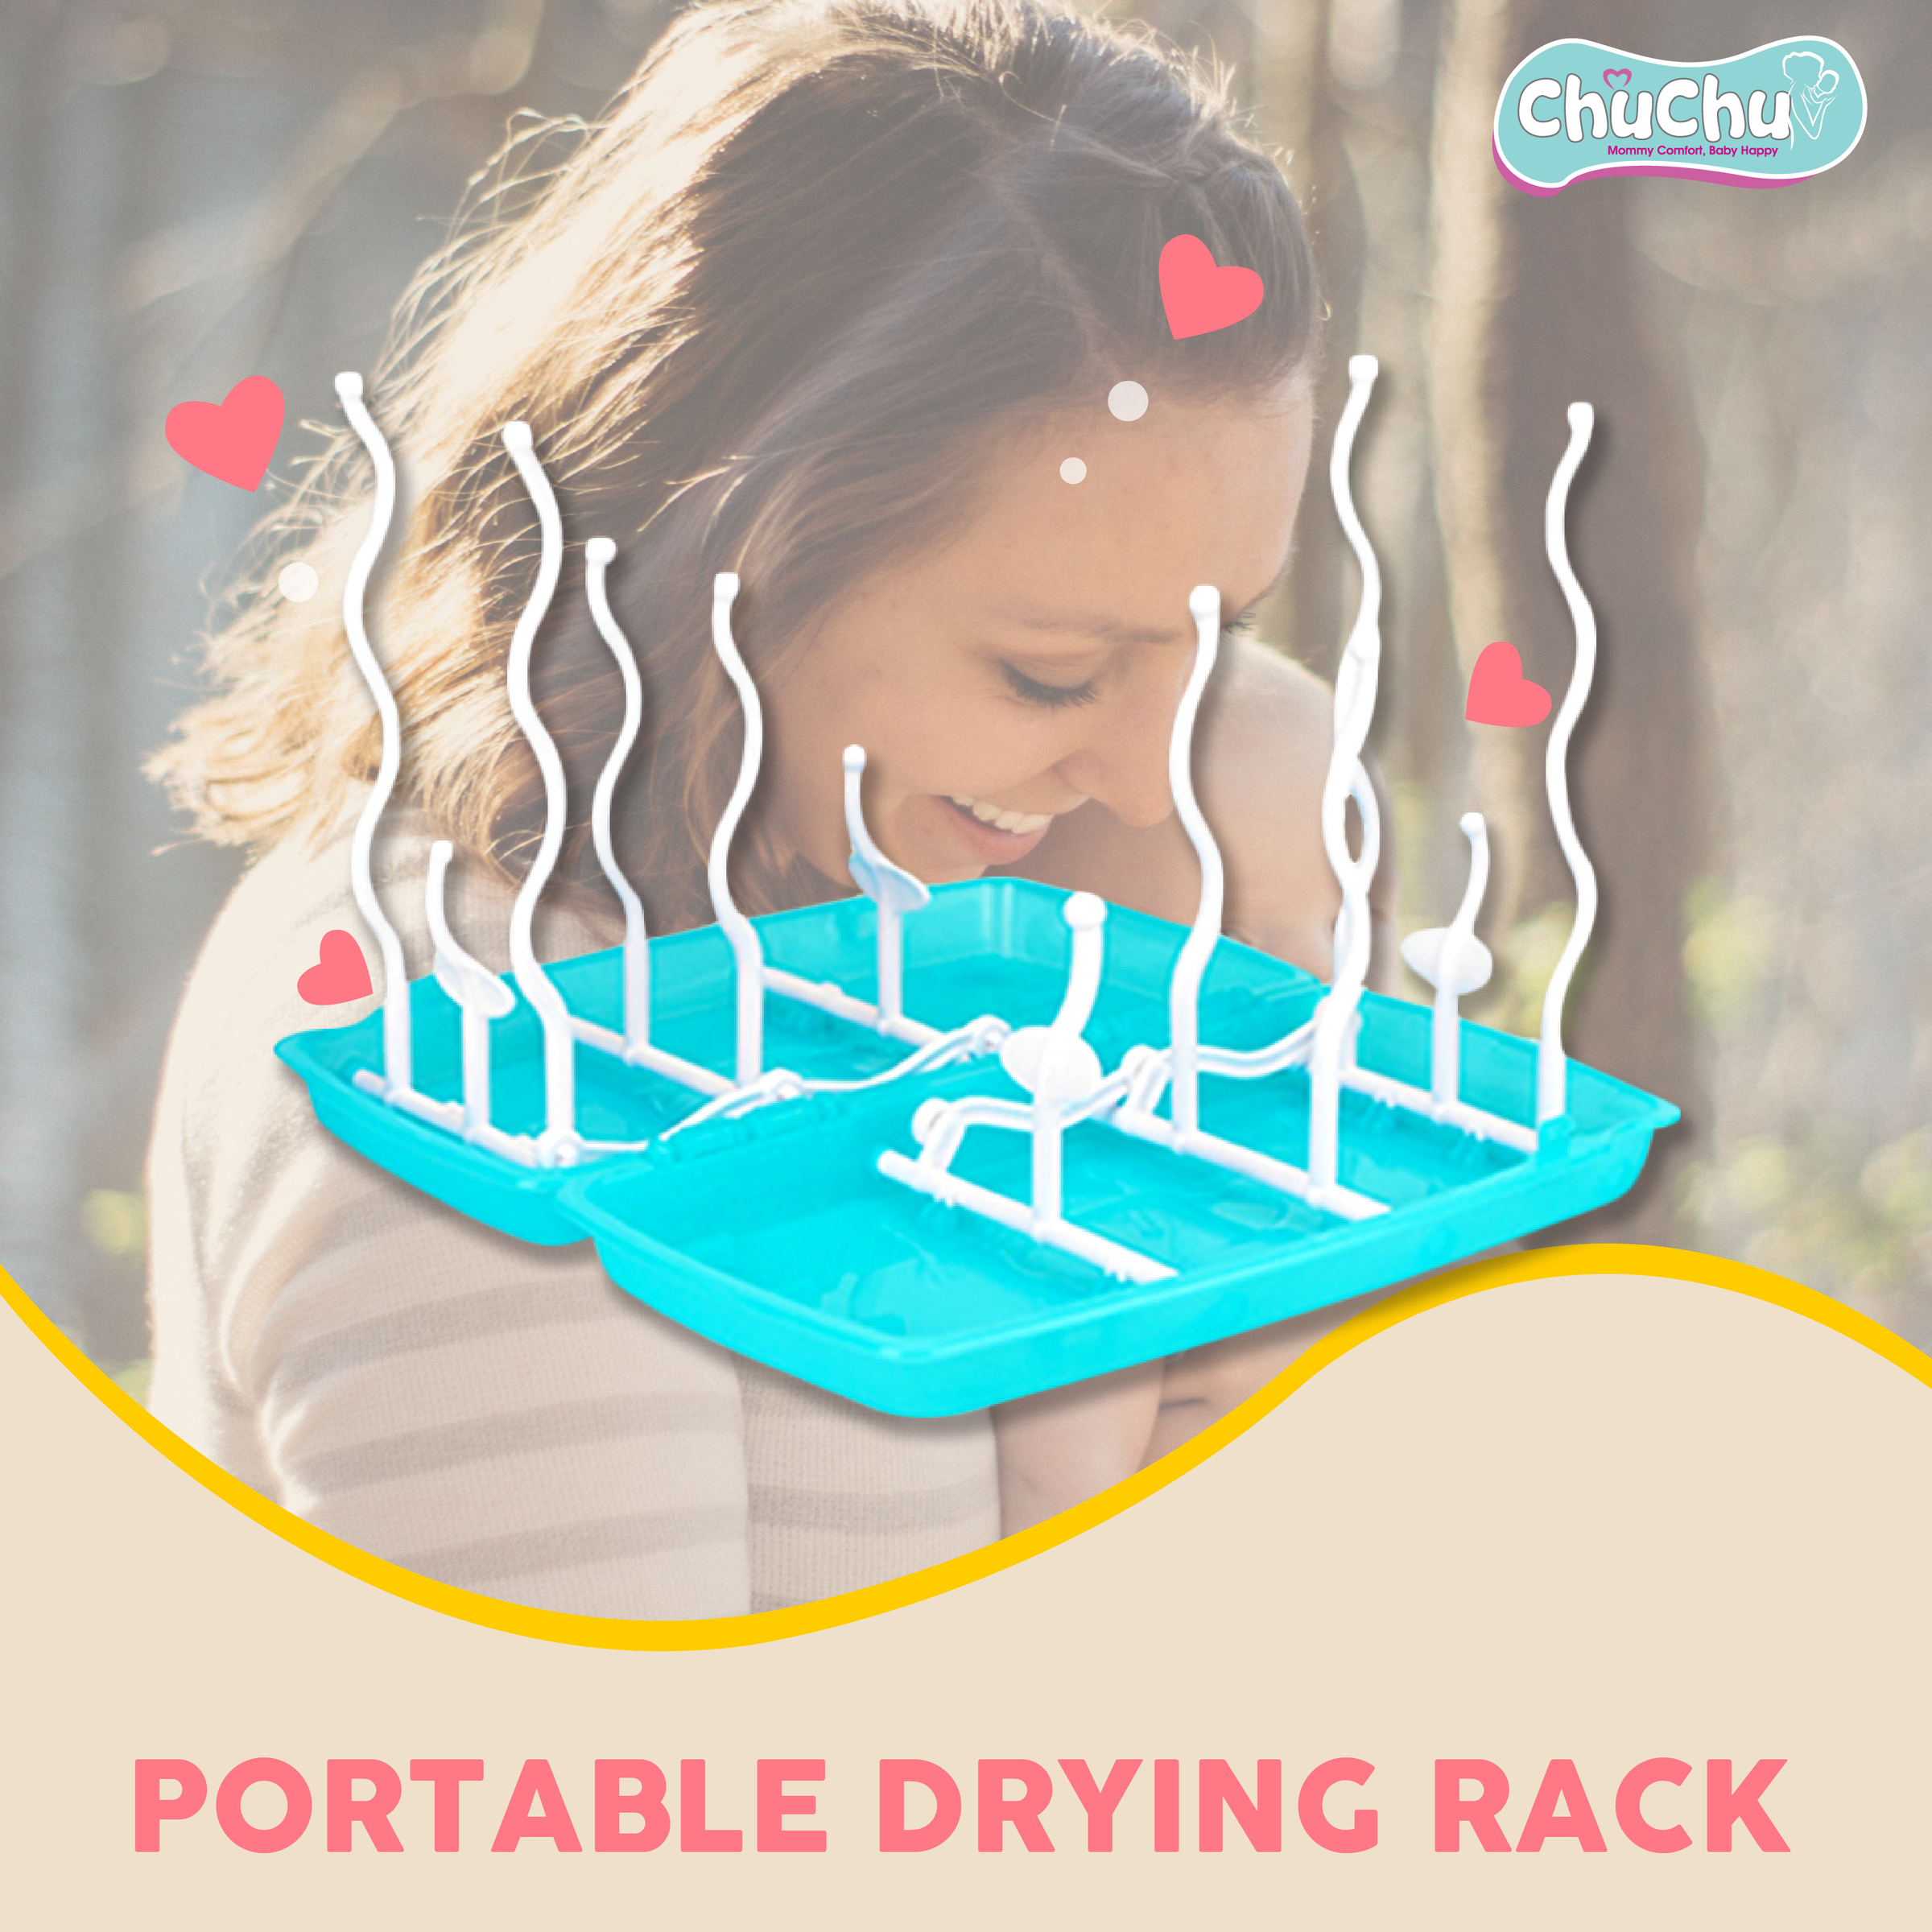 Portable Drying Rack ChuChu.png